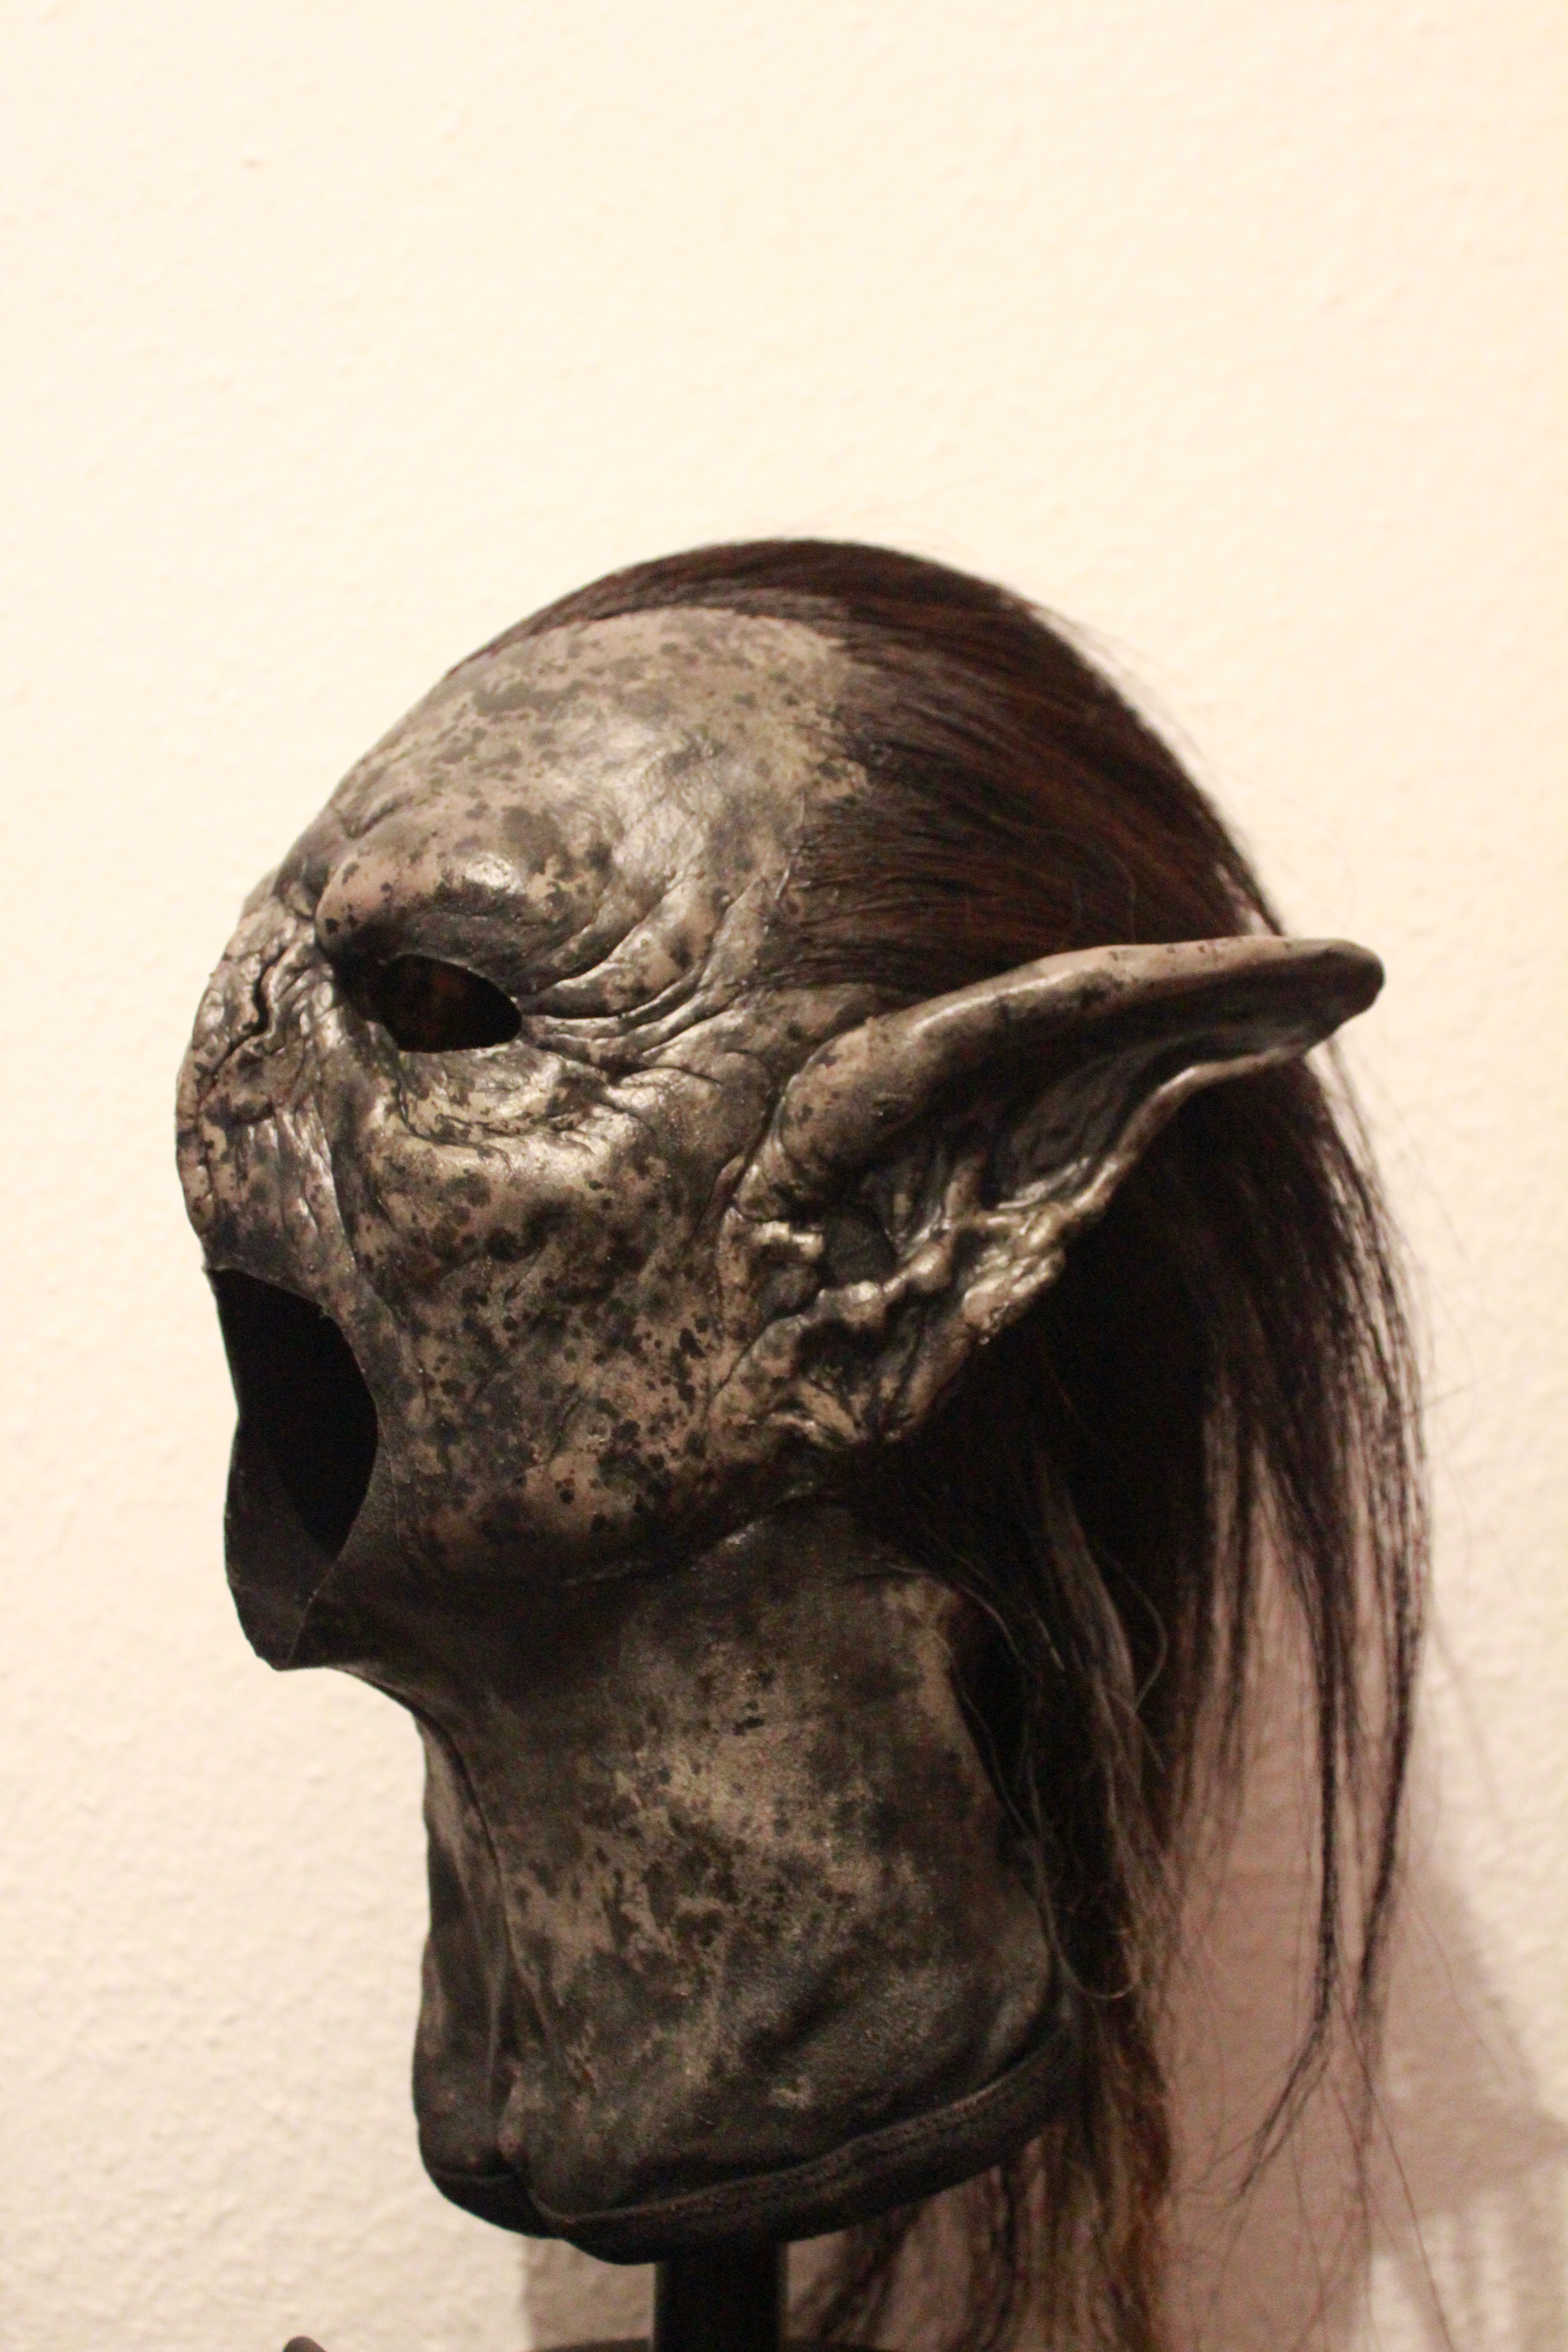 Lord of the Rings - wearable Moria Orc Mask Replica